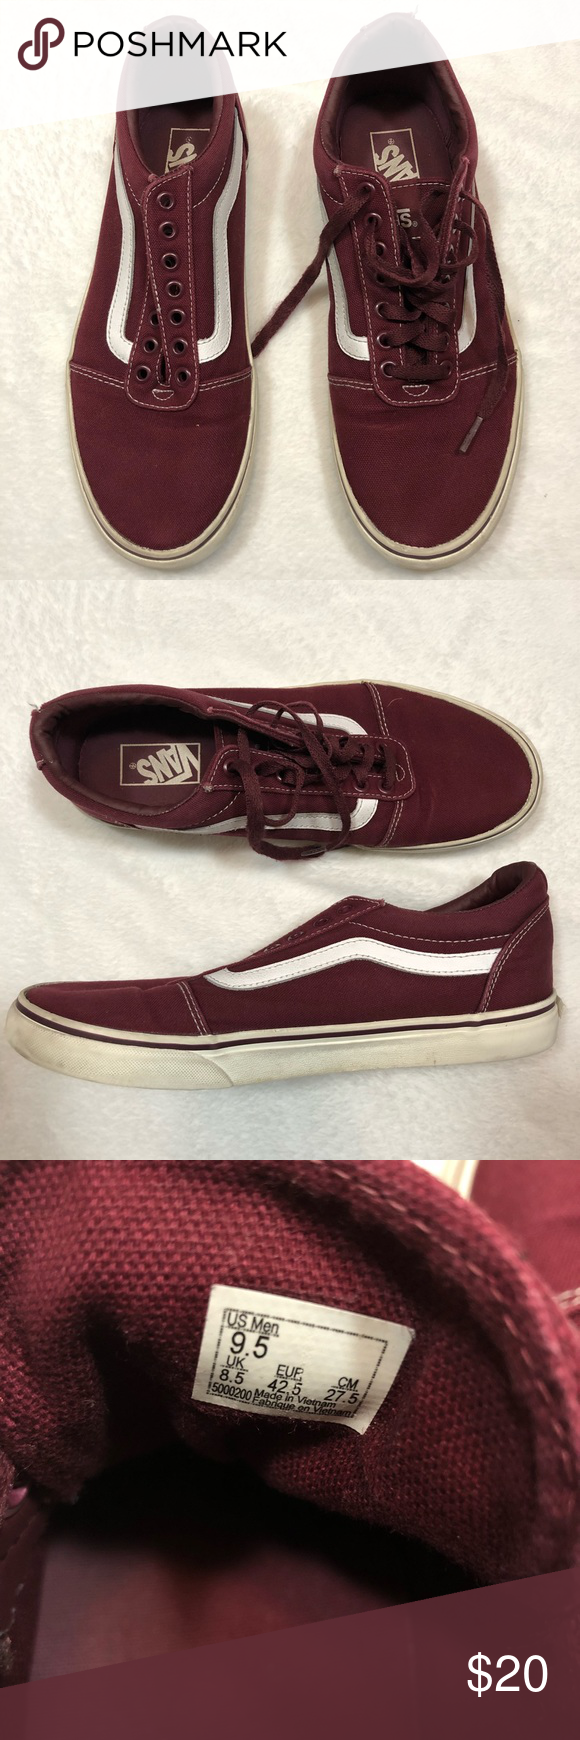 f0189230ea2d58 Vans maroon classic low mens 9.5 womens 11 shoes Vans Men s size 9.5  women s size 11 Maroon with classic white stripe Missing one shoe lace and  light wear ...